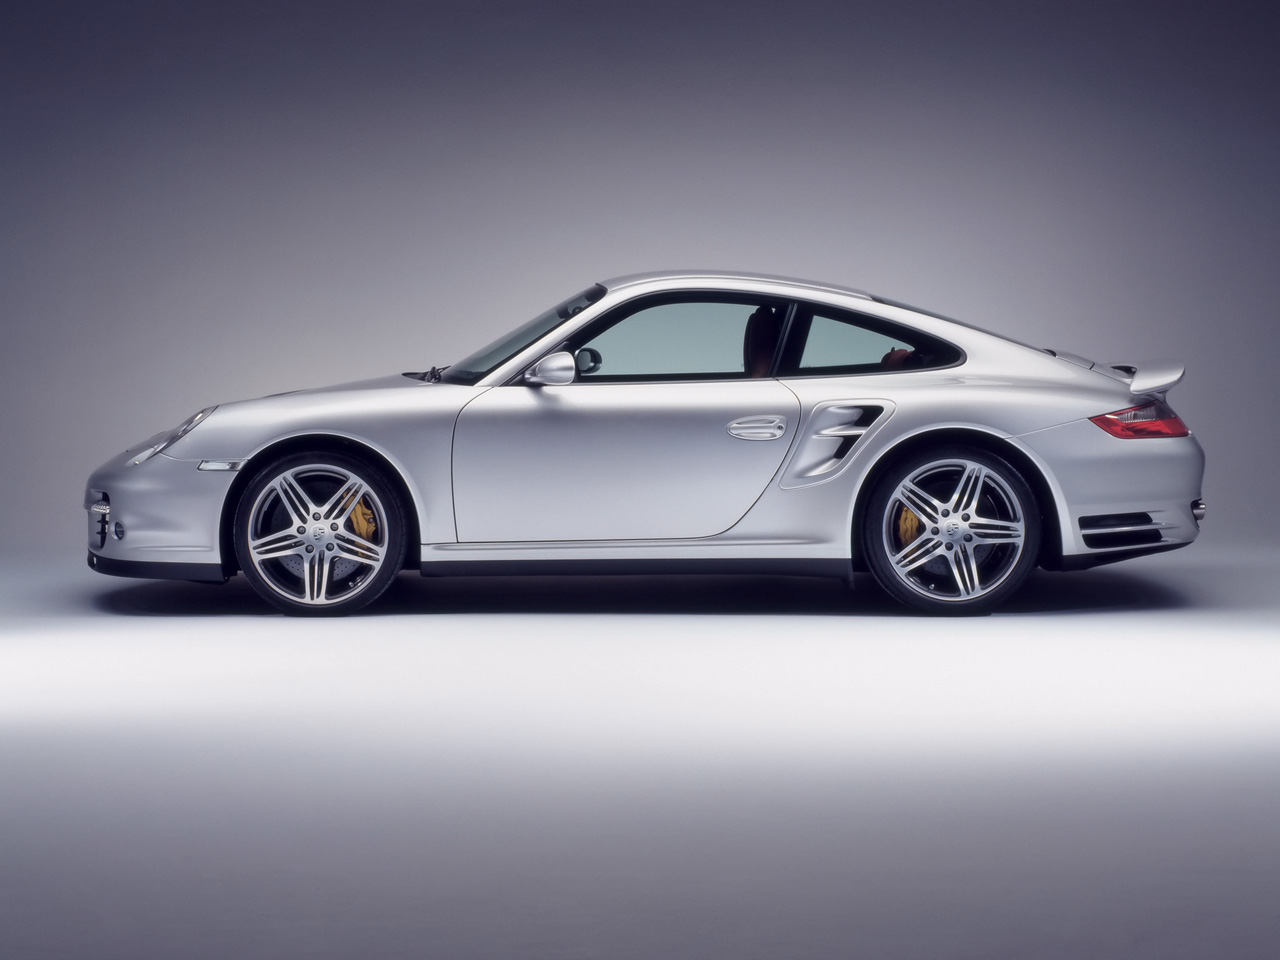 Porsche 911 Turbo S Luxury And Fast Cars